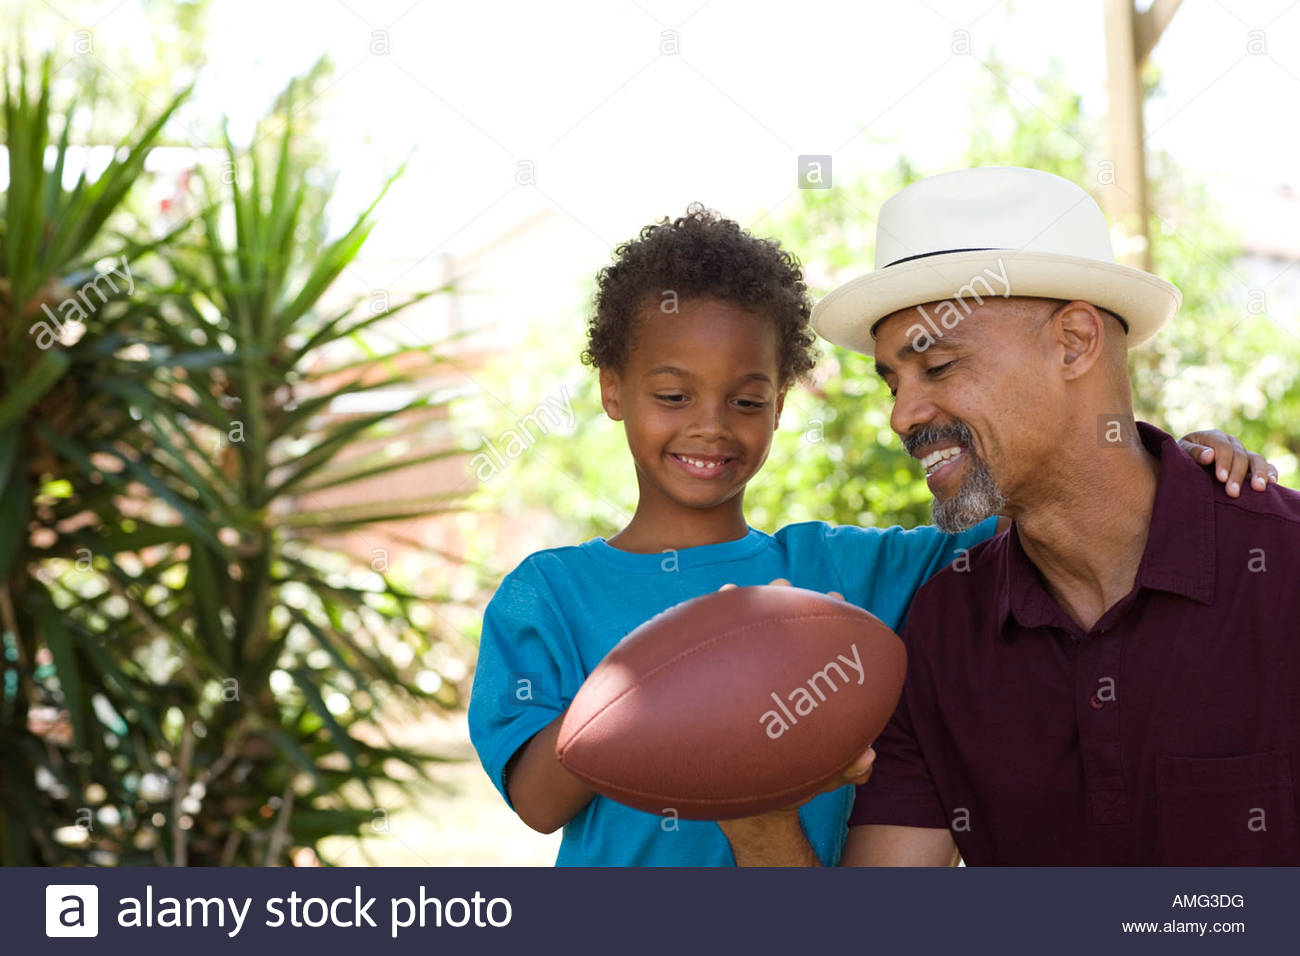 Man and young boy holding a football outdoors - Stock Image